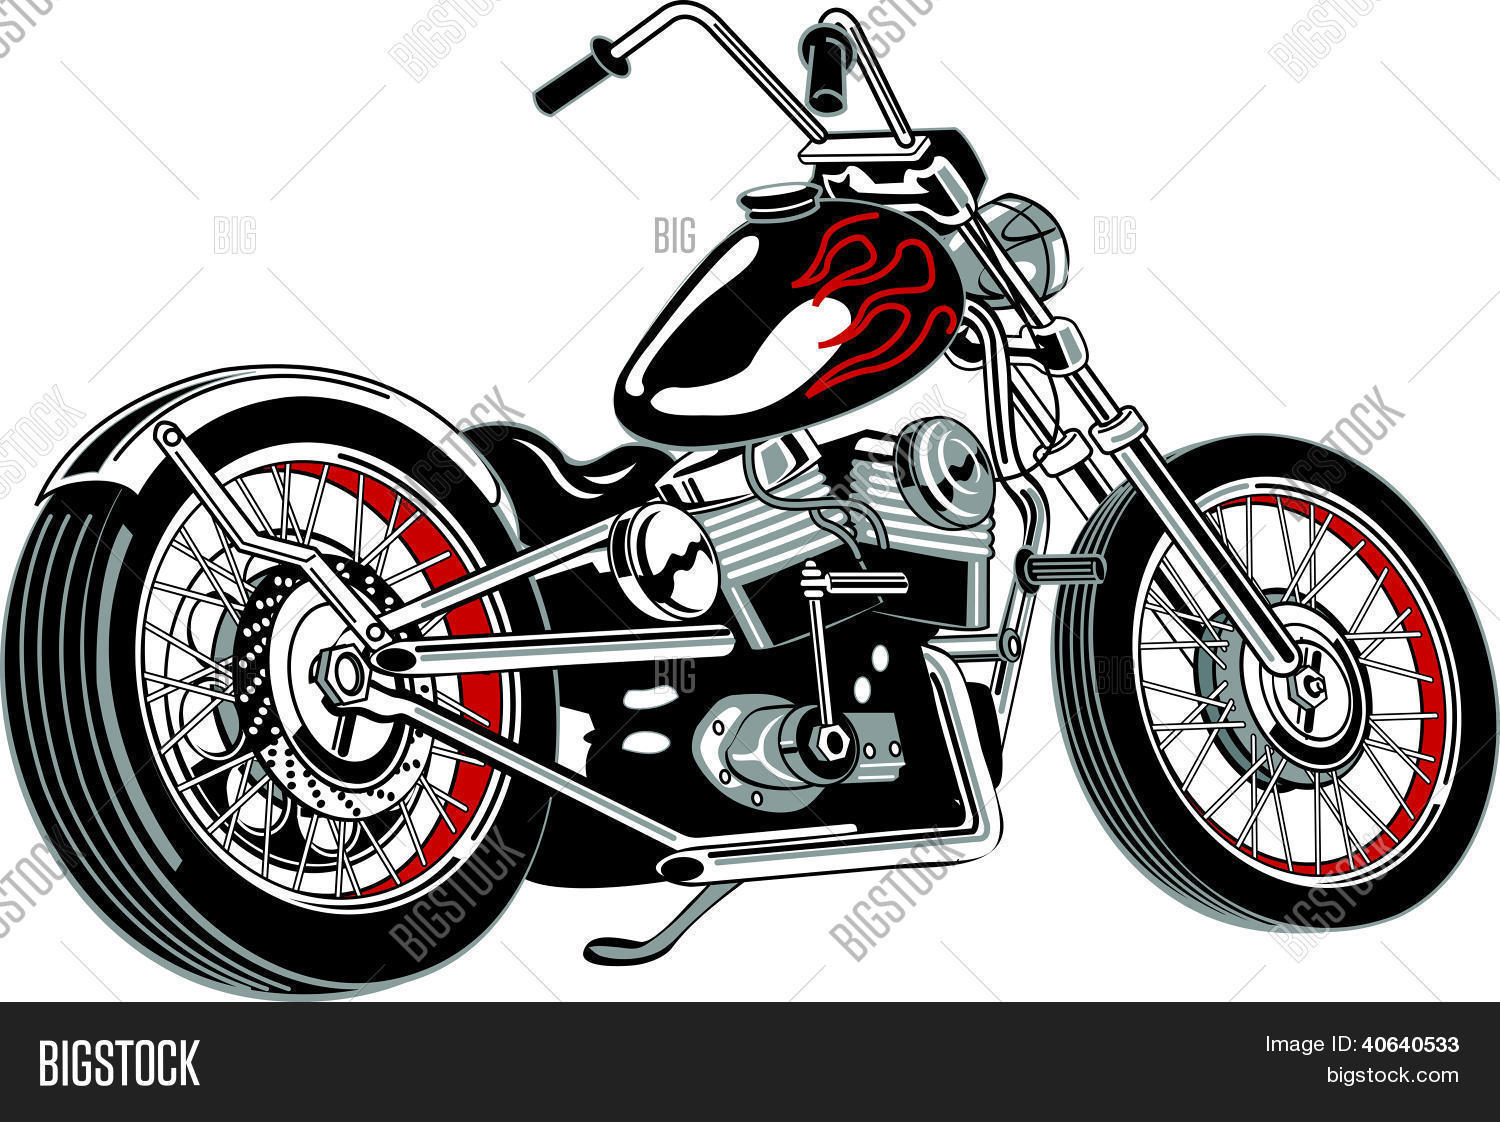 Motorcycle clip art with flames - Motorcycle Clipart